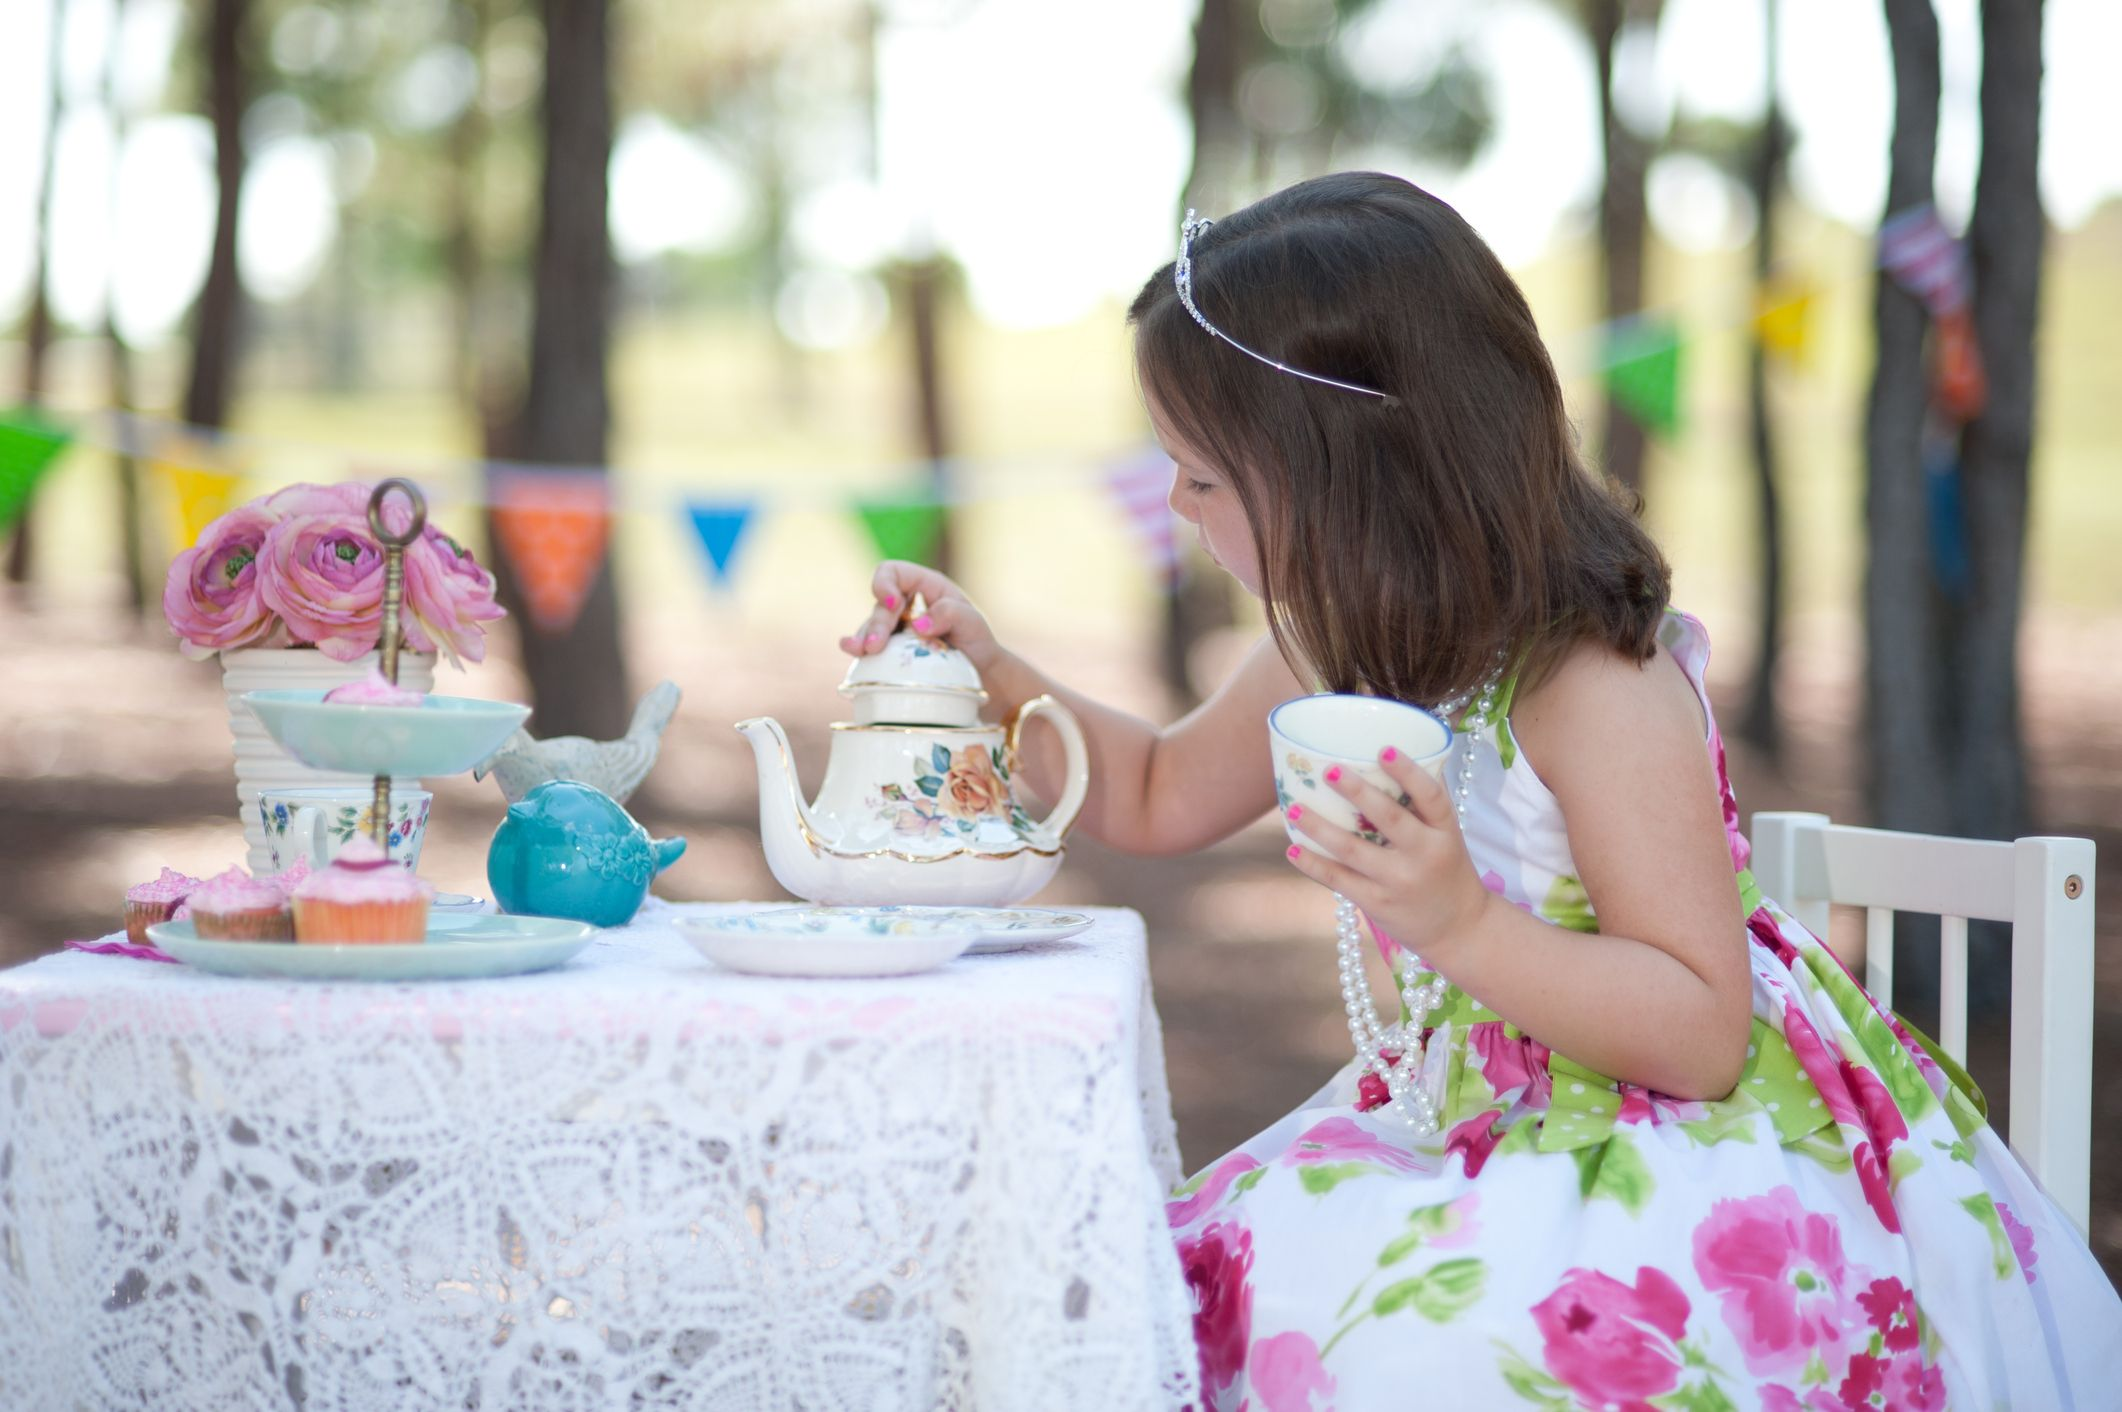 Why Do Children Have Imaginary Friends, and How Far Do You Have to Play Along?